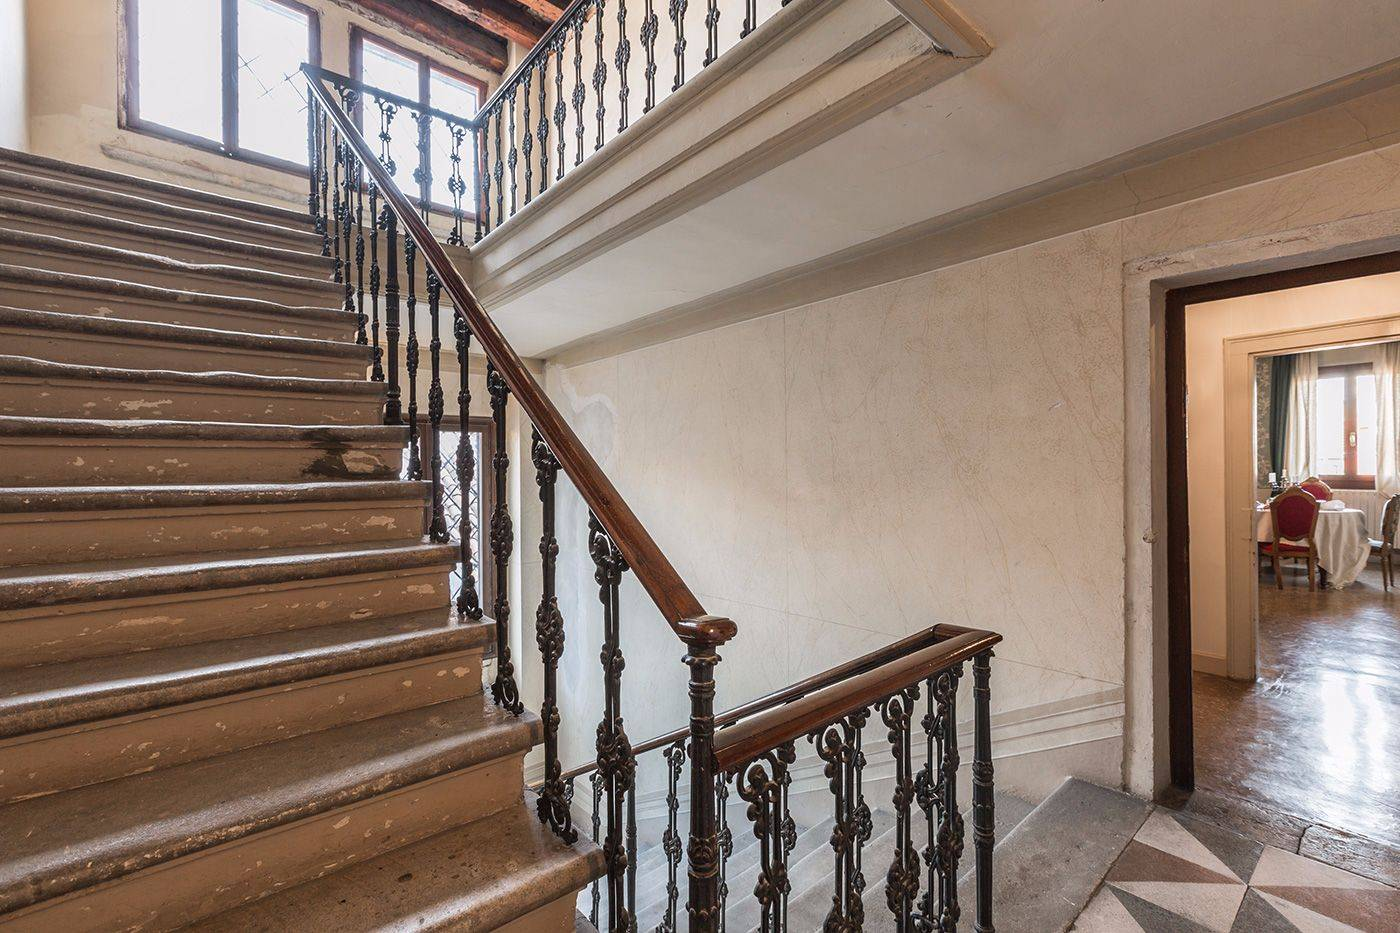 the beautiful antique stone stairway and the entrance to the Fortuny apartment